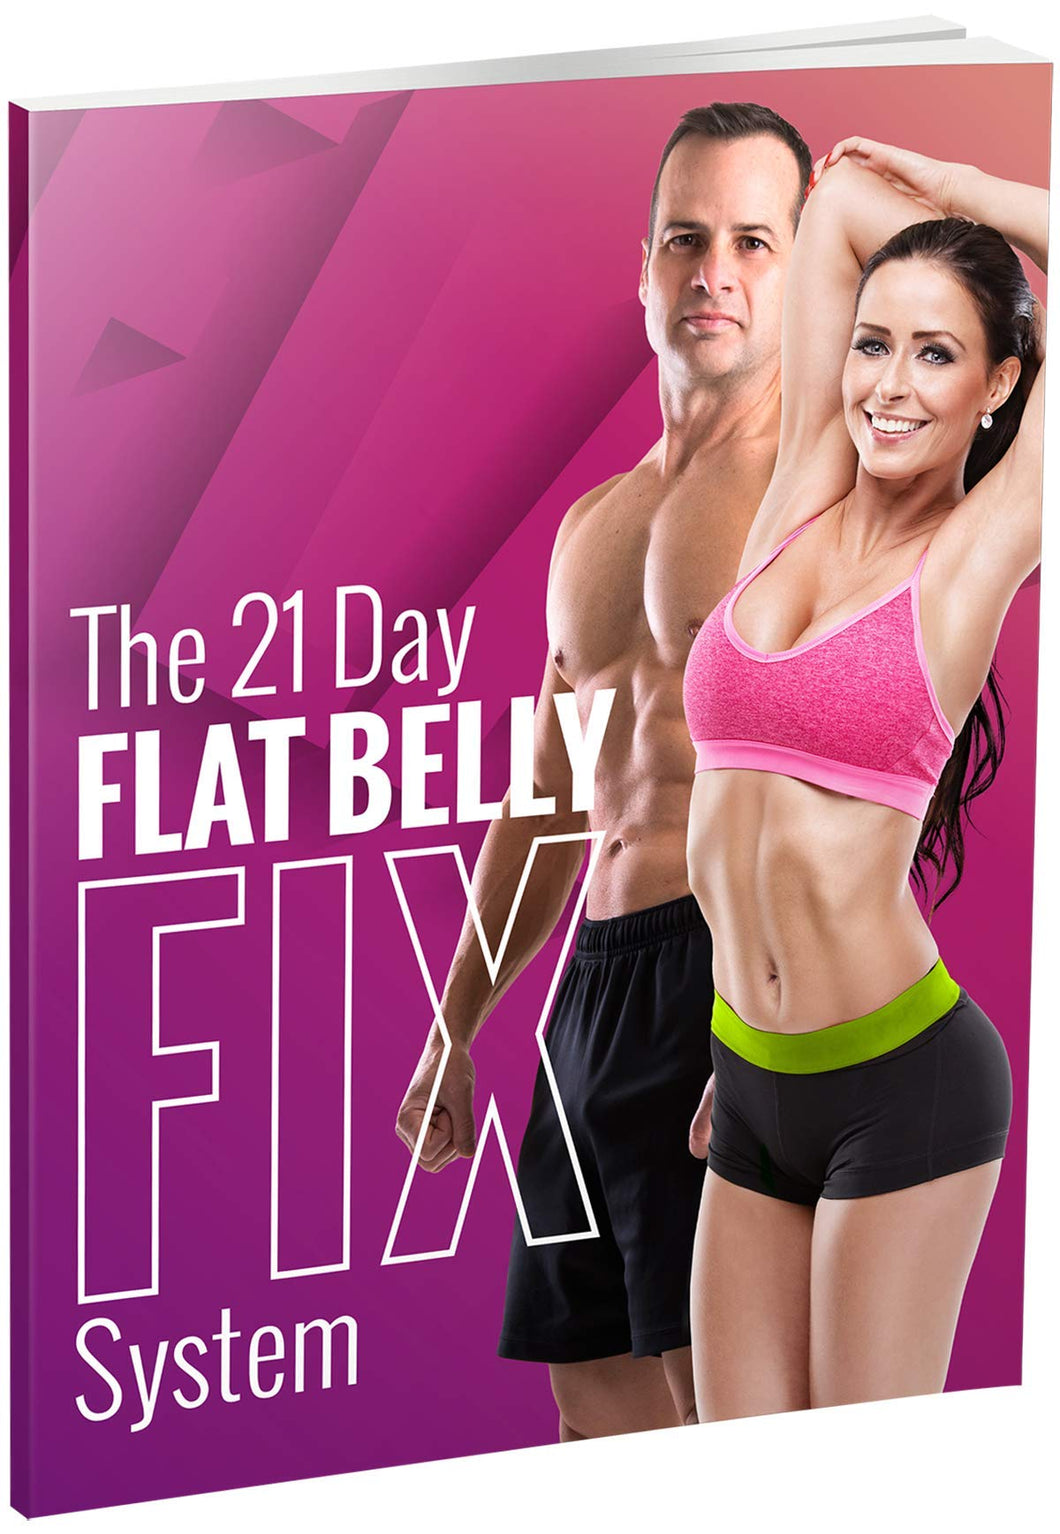 Flat Belly Fix - Buy Today